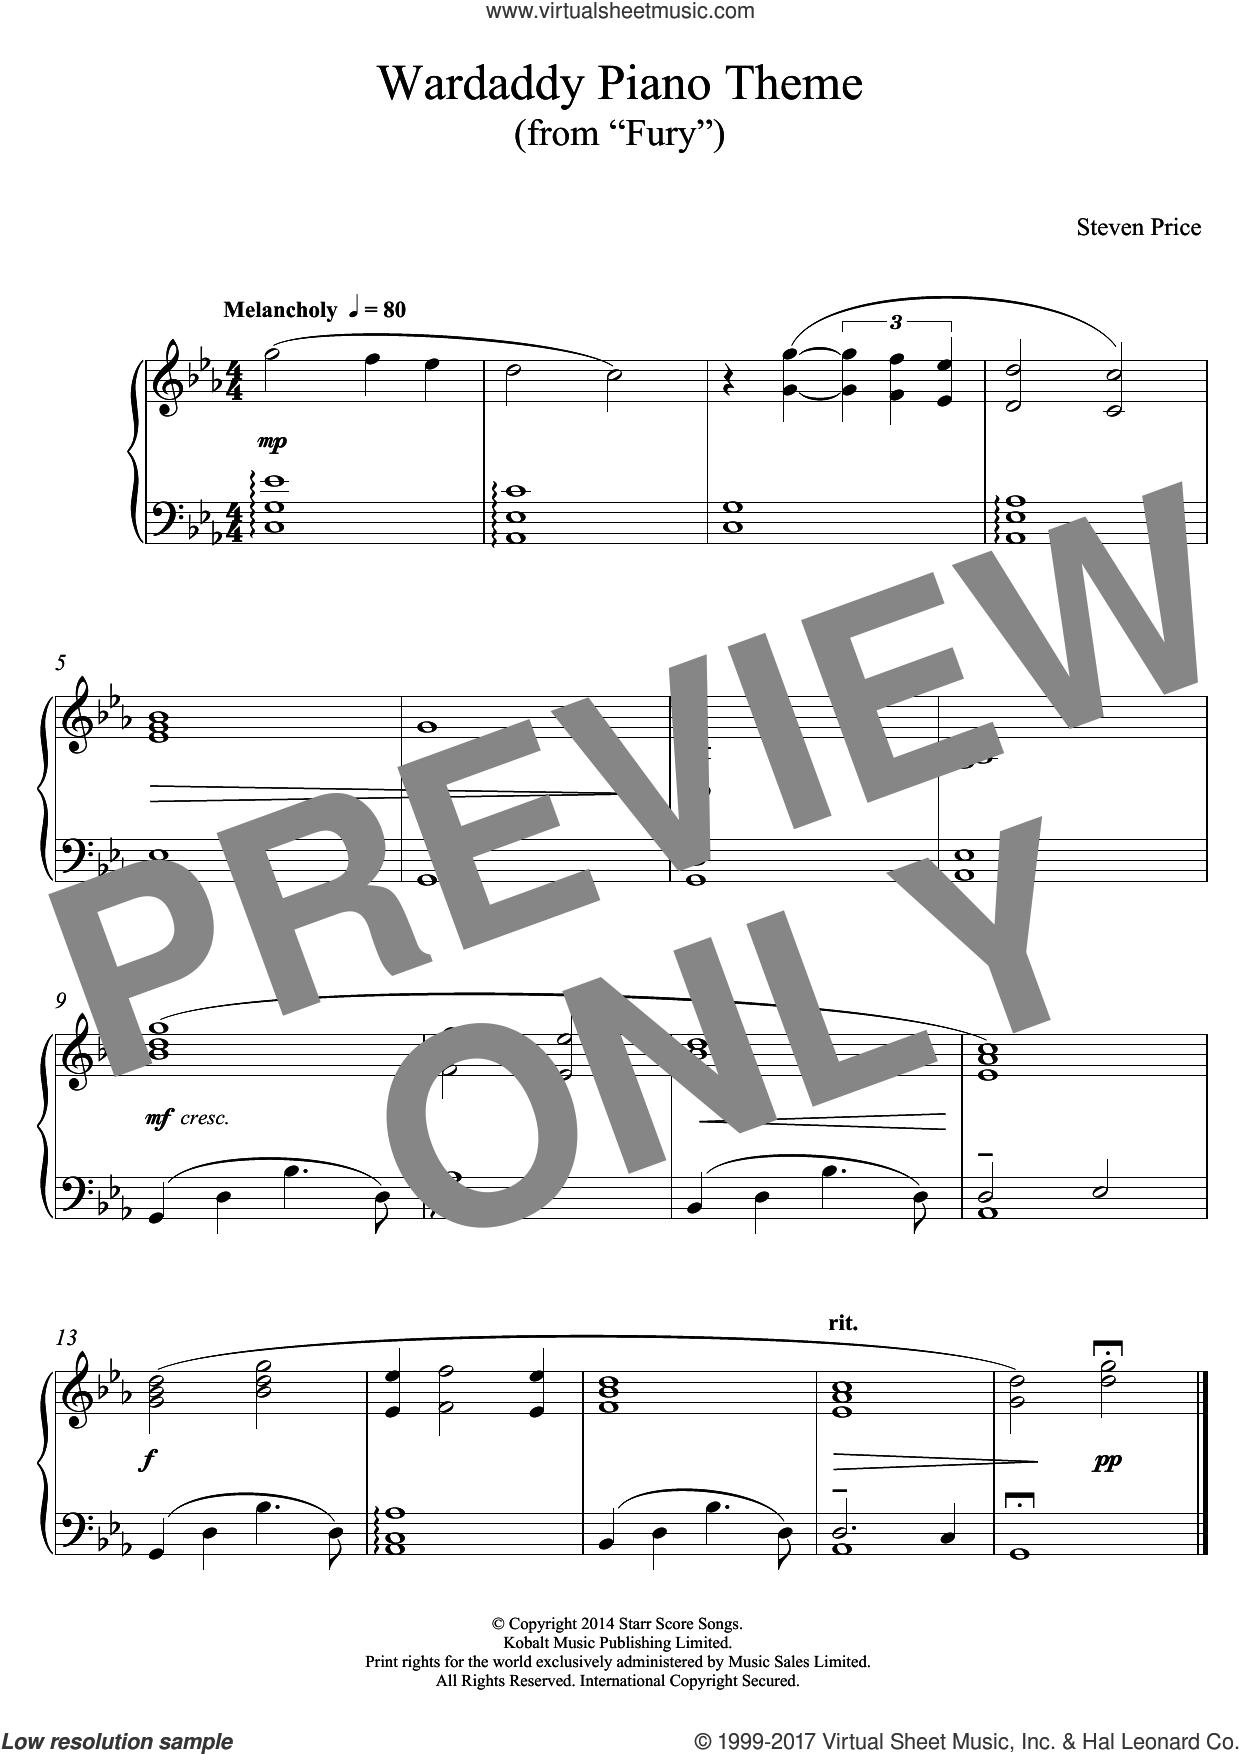 Wardaddy Piano Theme (from Fury) sheet music for piano solo by Steven Price, intermediate skill level